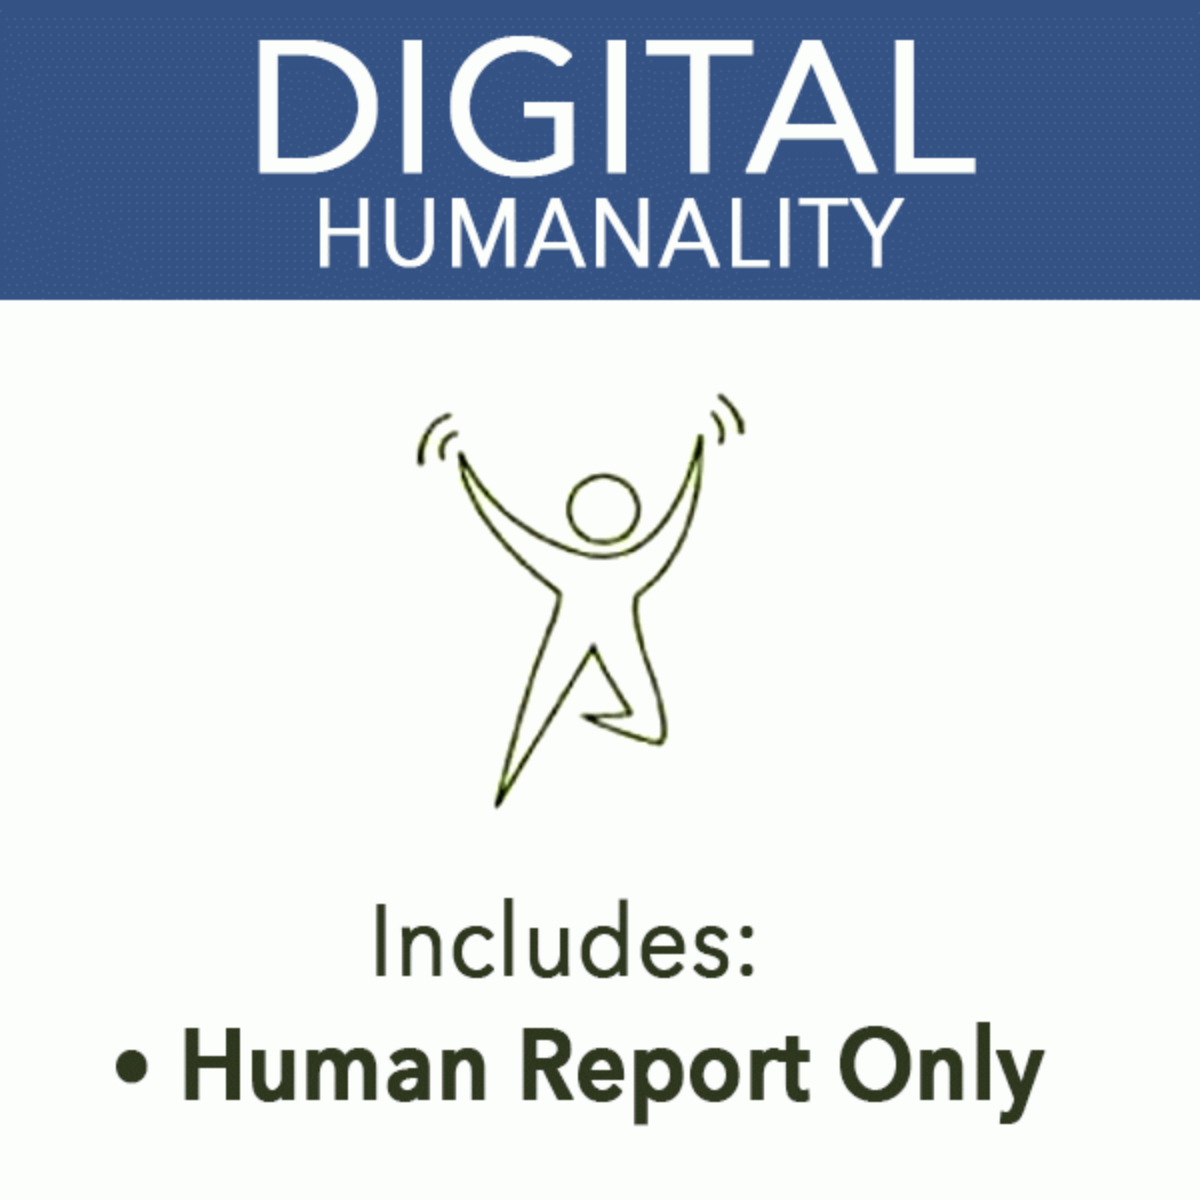 Humanality Report Only Digital